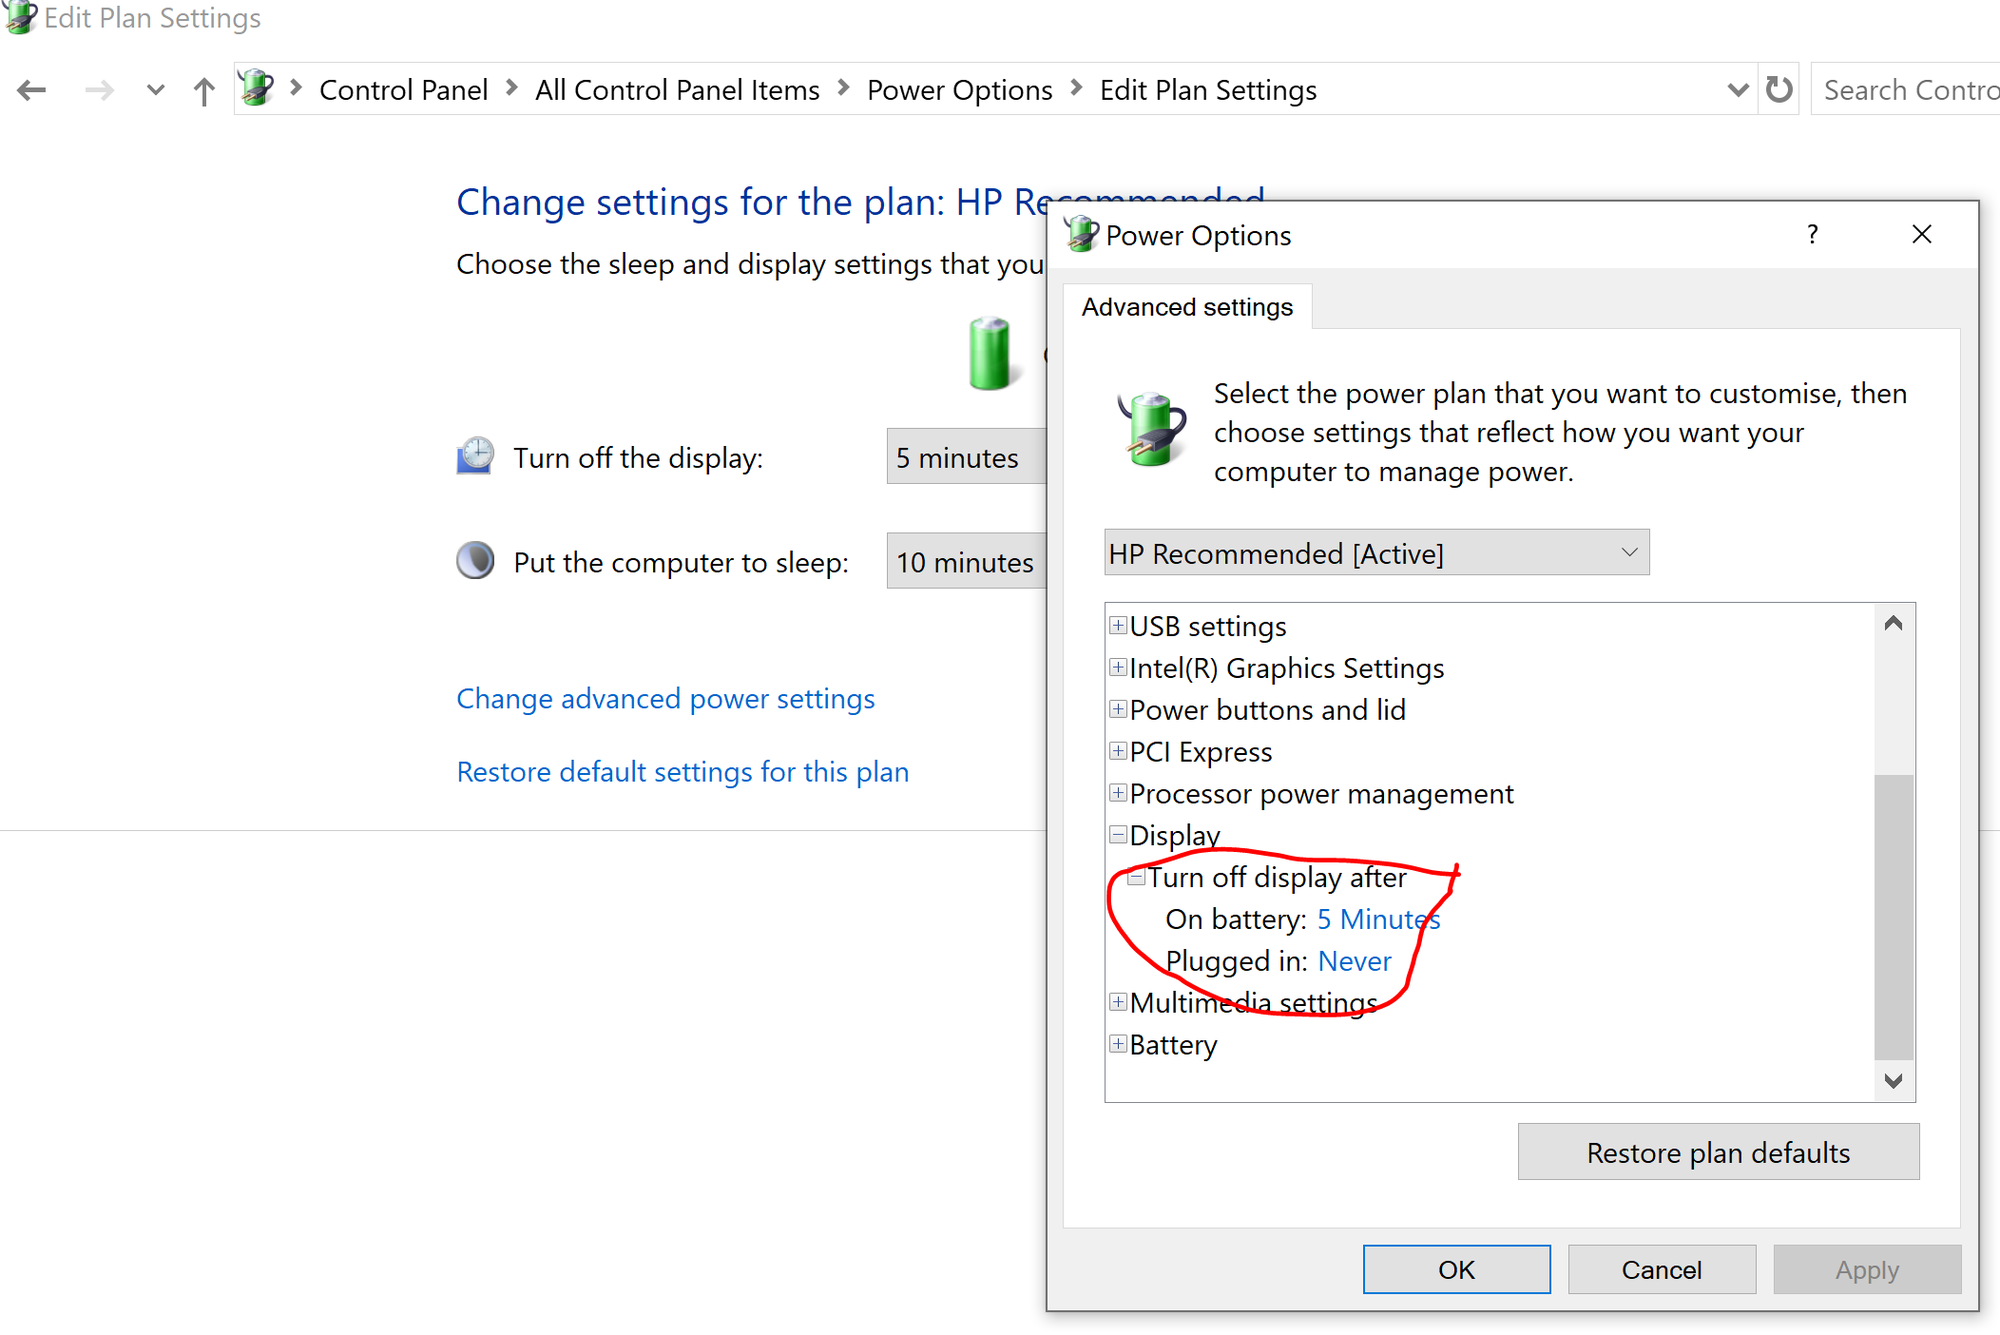 Enable or Disable Adaptive Brightness in Windows 10 0813411c-198d-4c28-be1c-0abb429cdcbb?upload=true.png